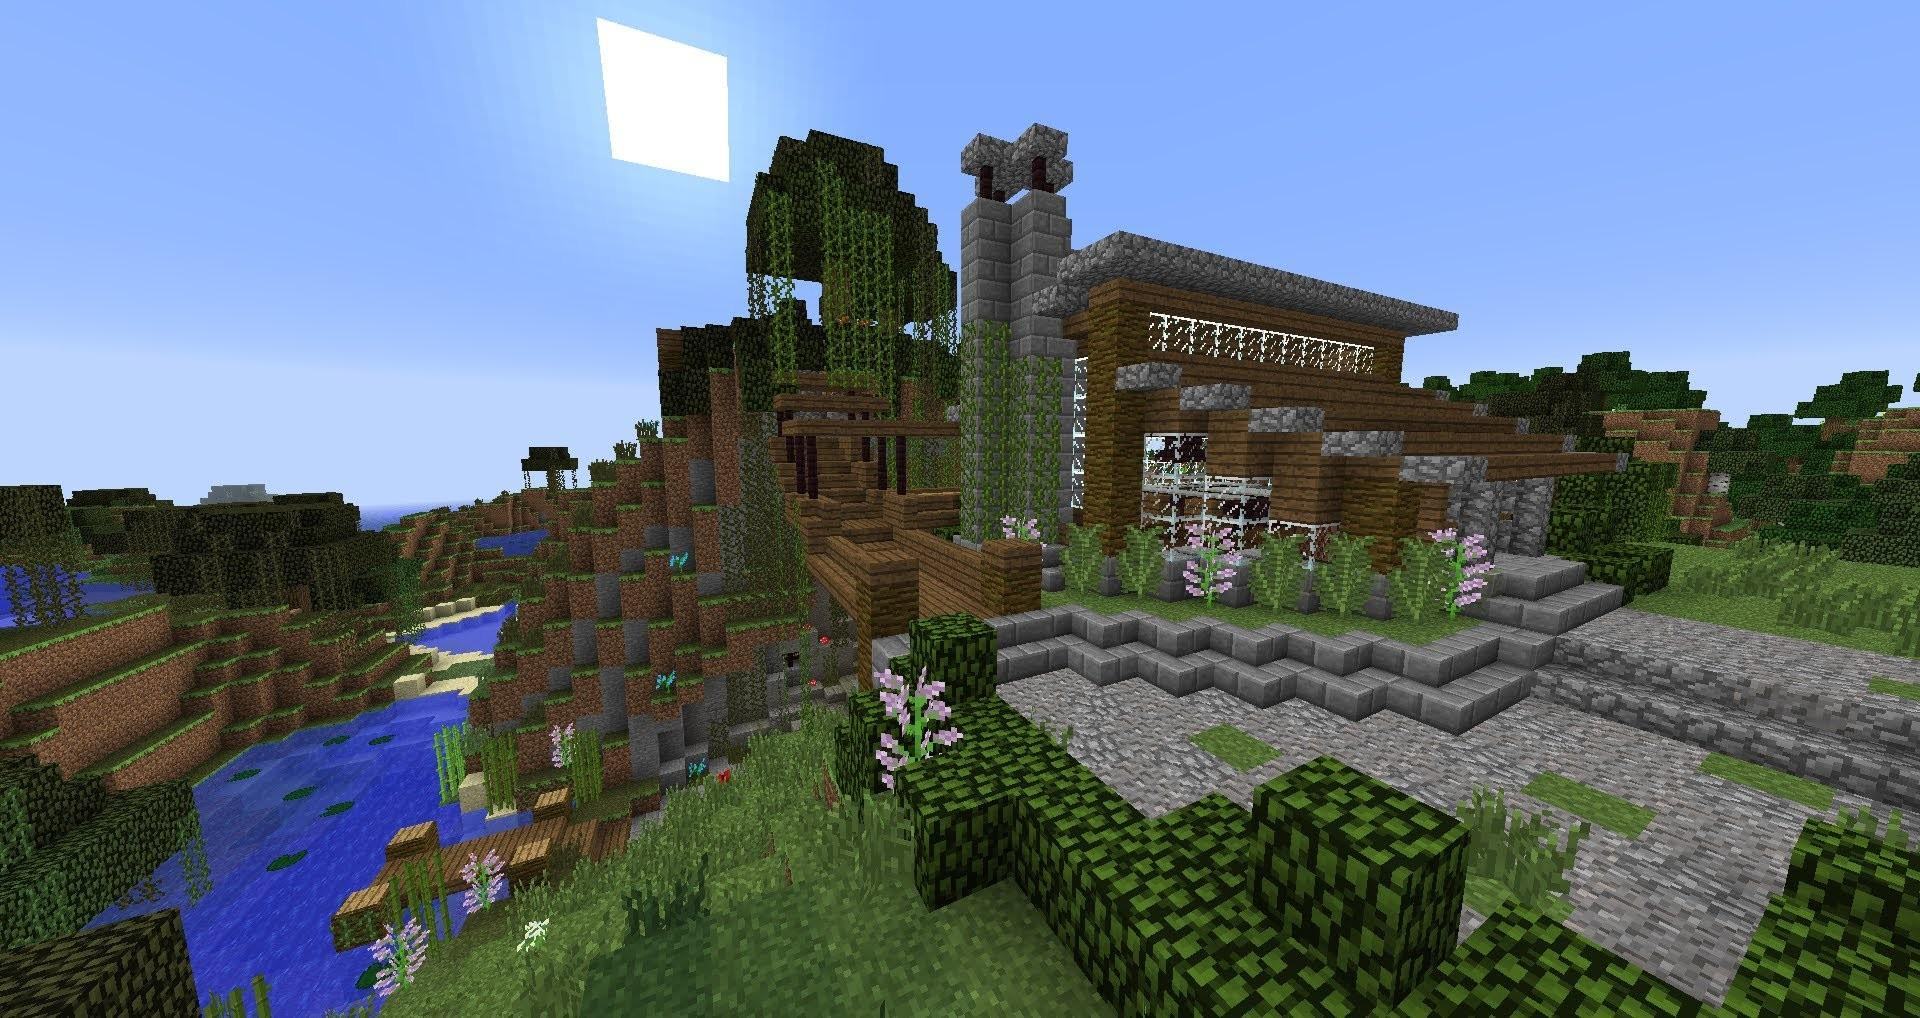 Small Lake House Vacation Home Minecraft Tour